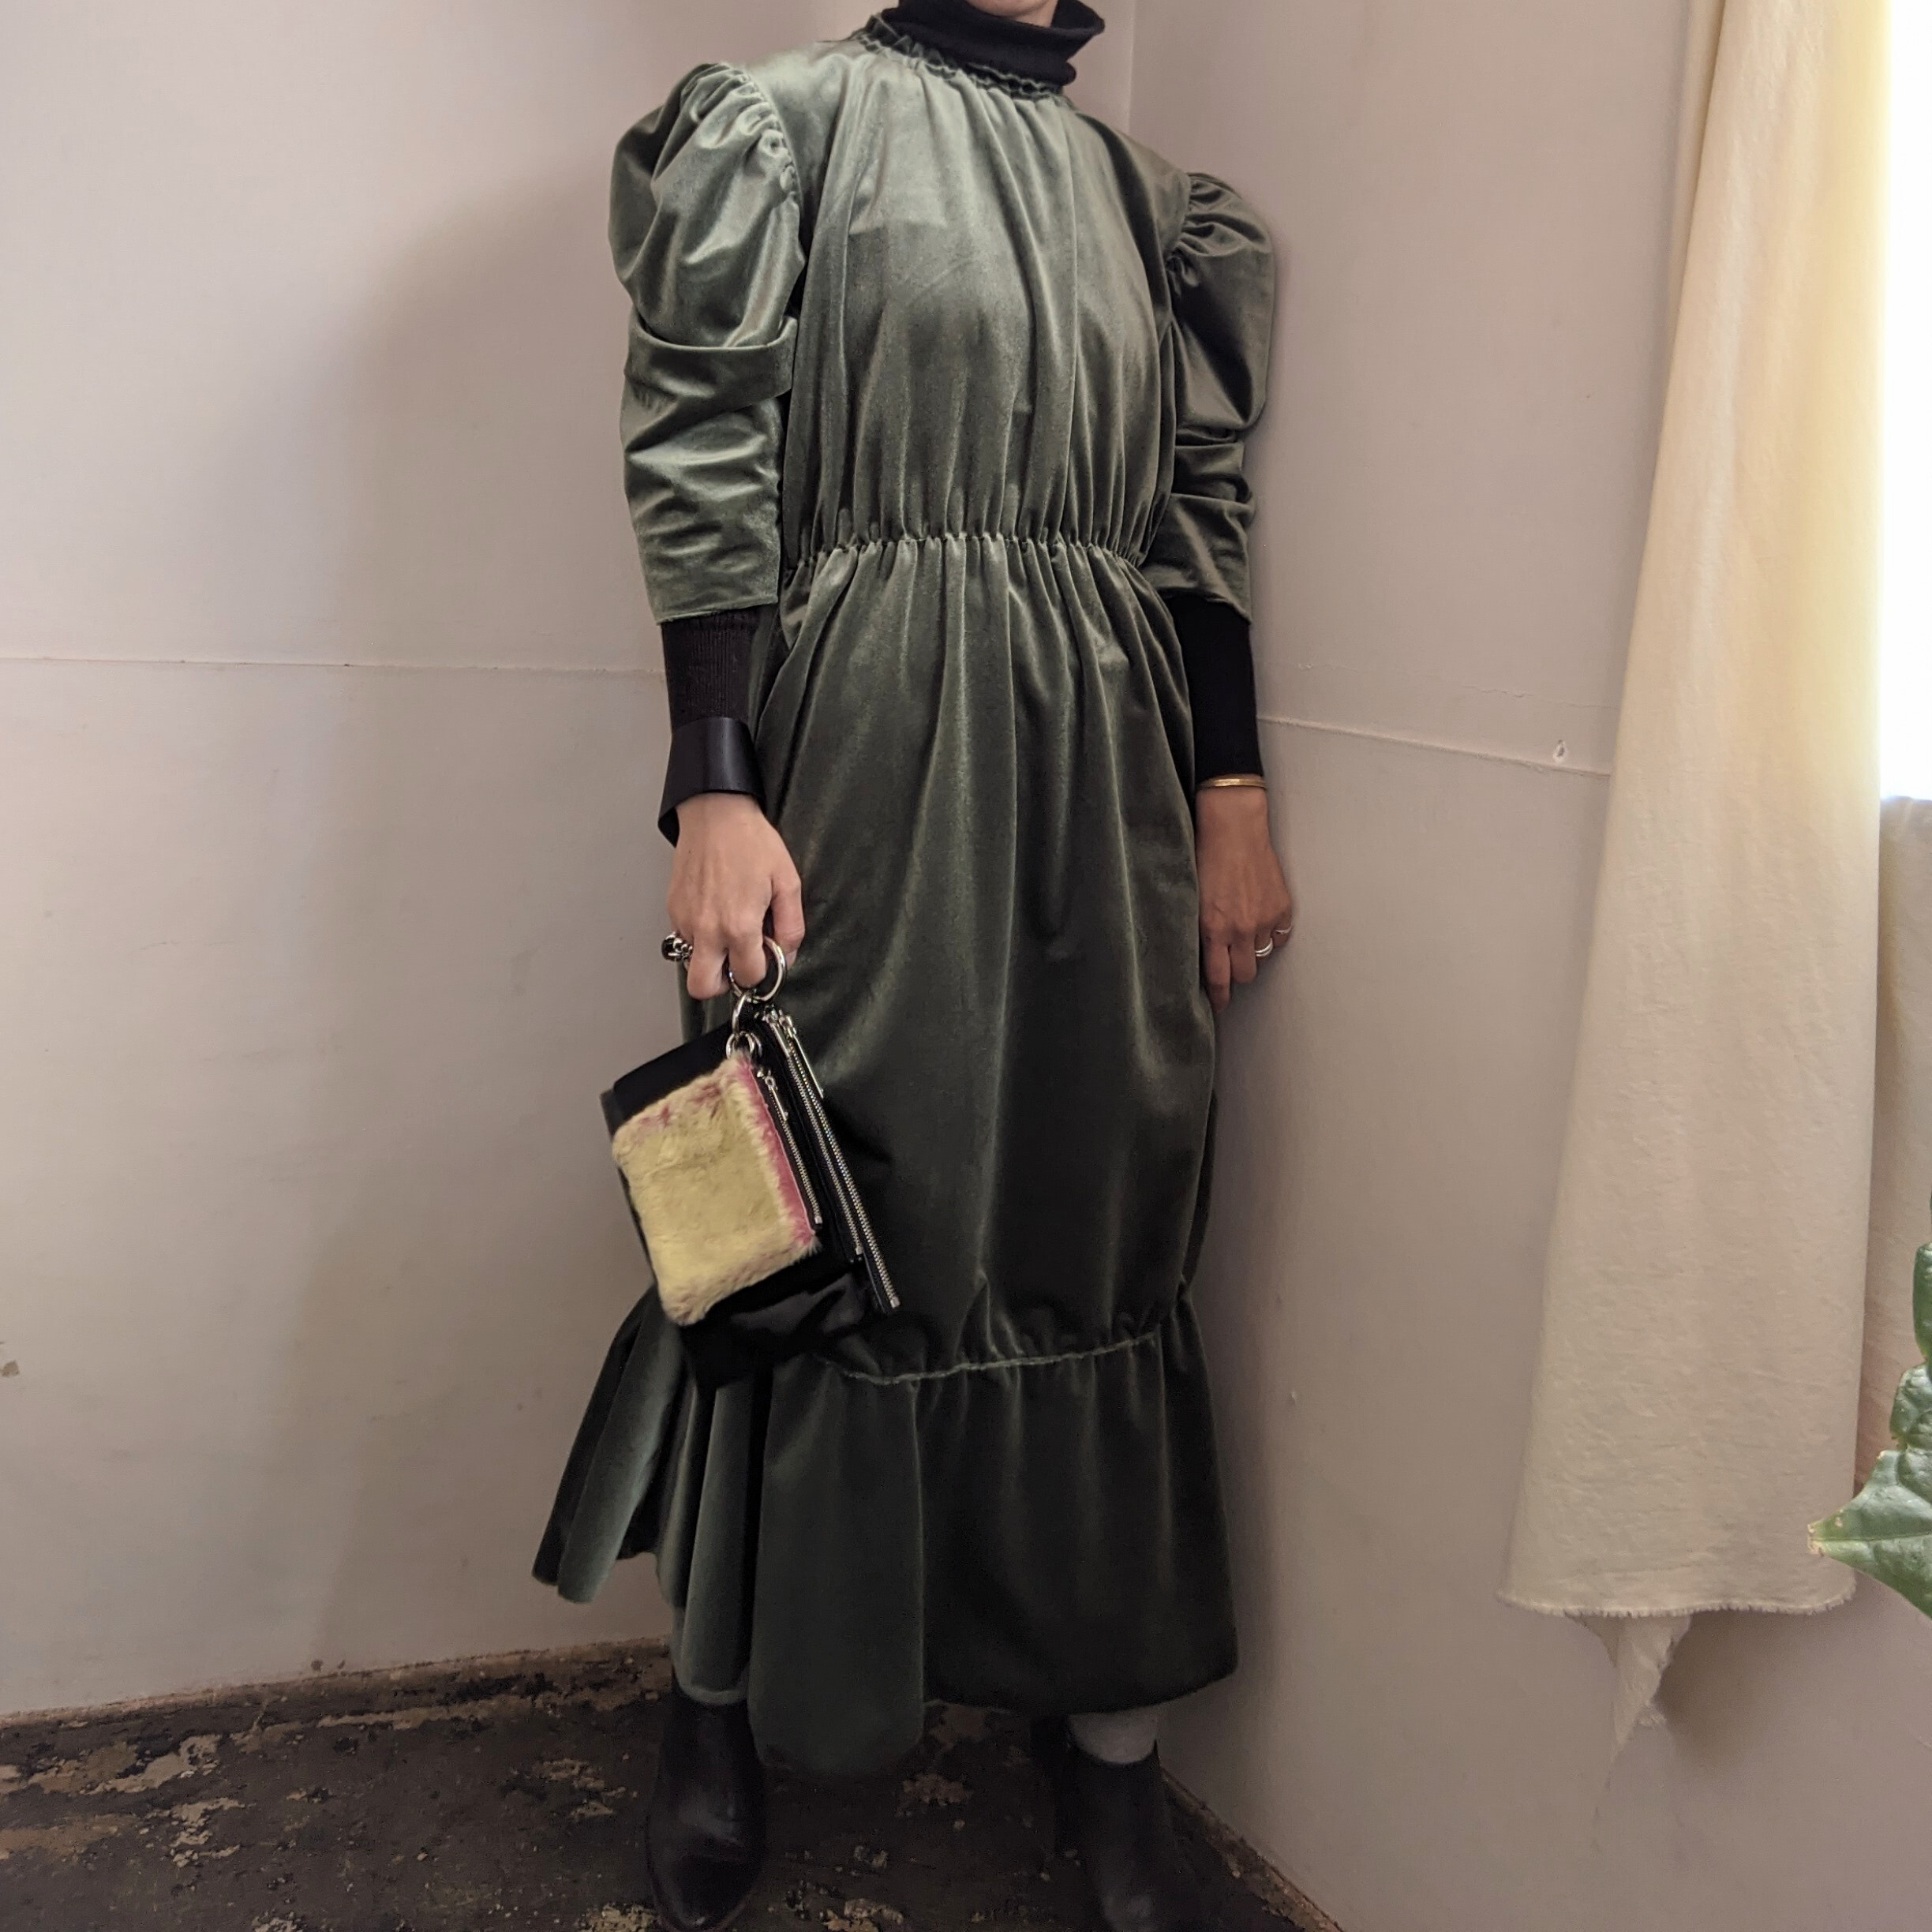 【 HOUGA 】ホウガ 2020AW blossom dress / green / partydress /秋冬